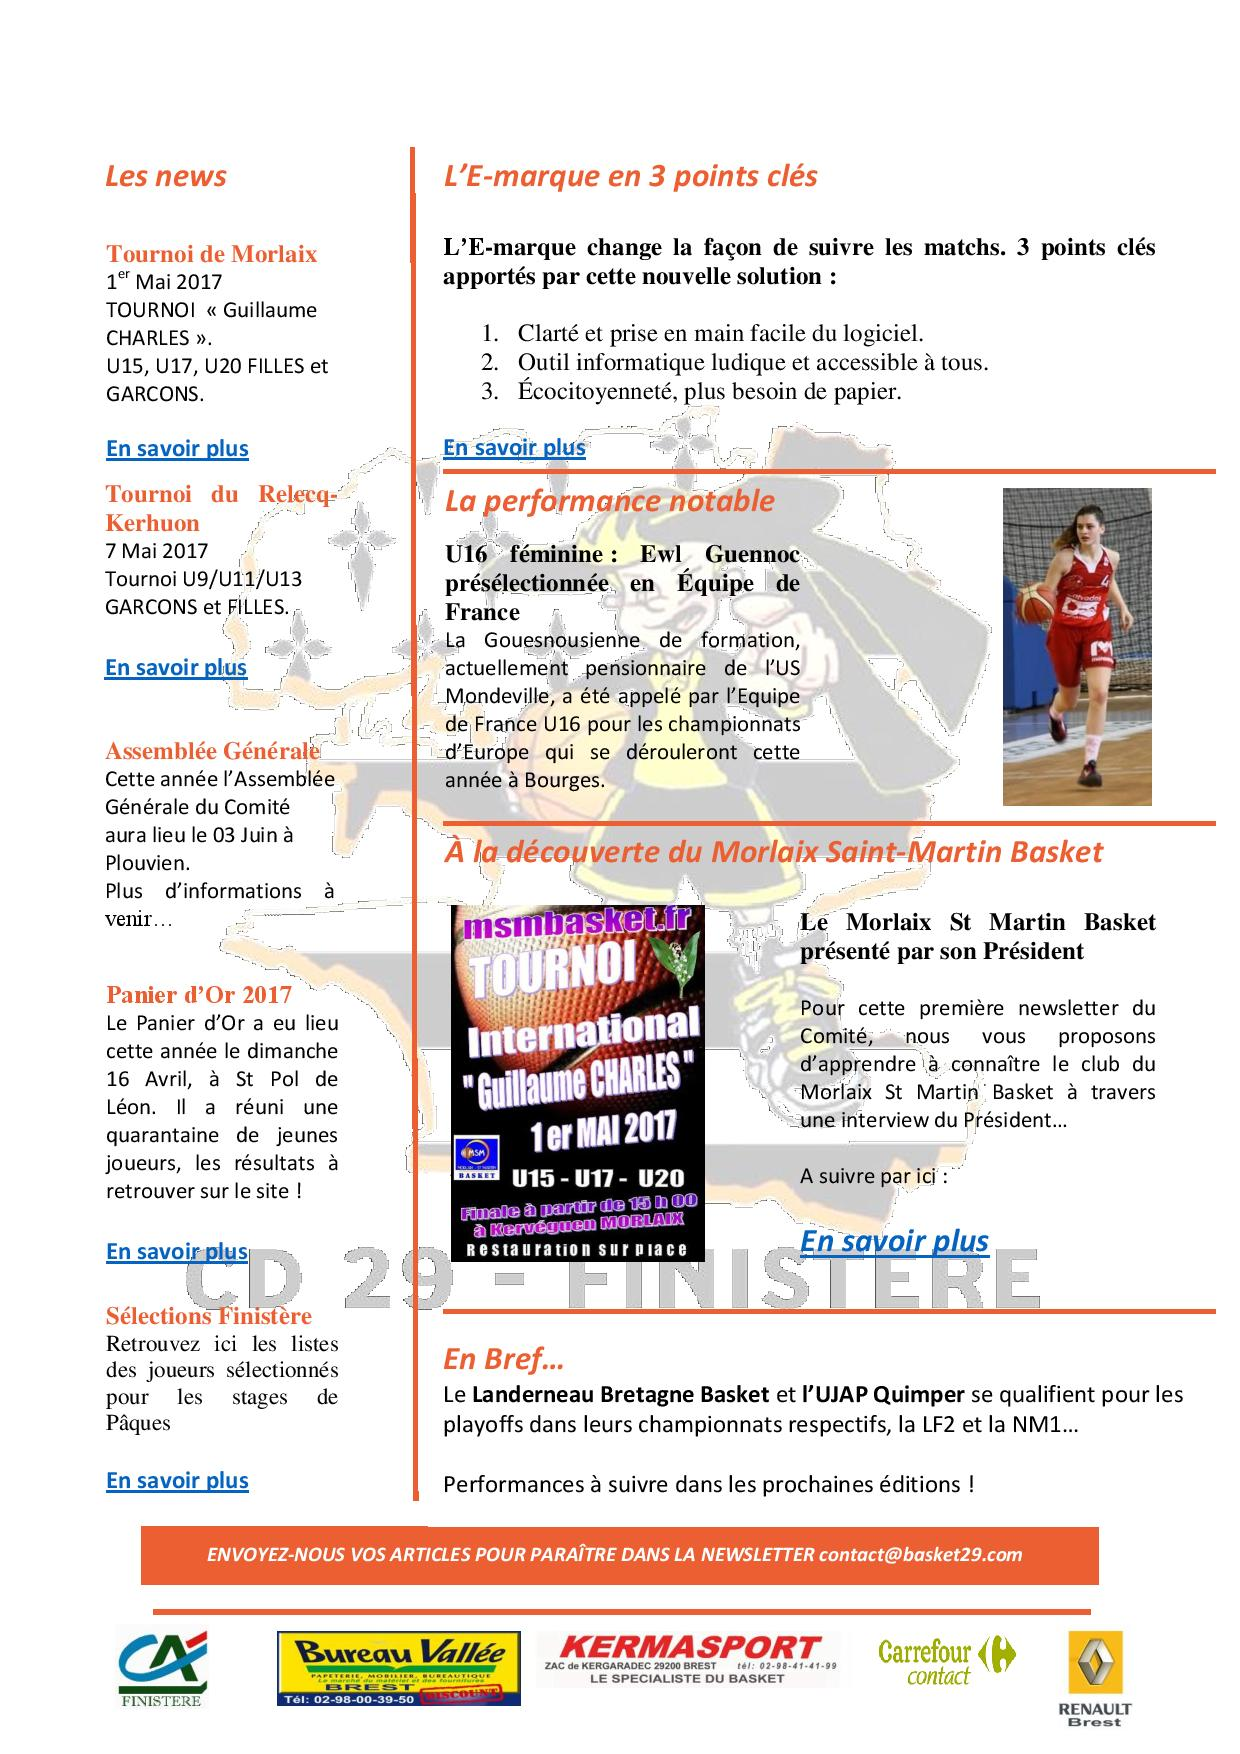 Newsletter CD 29 2/2